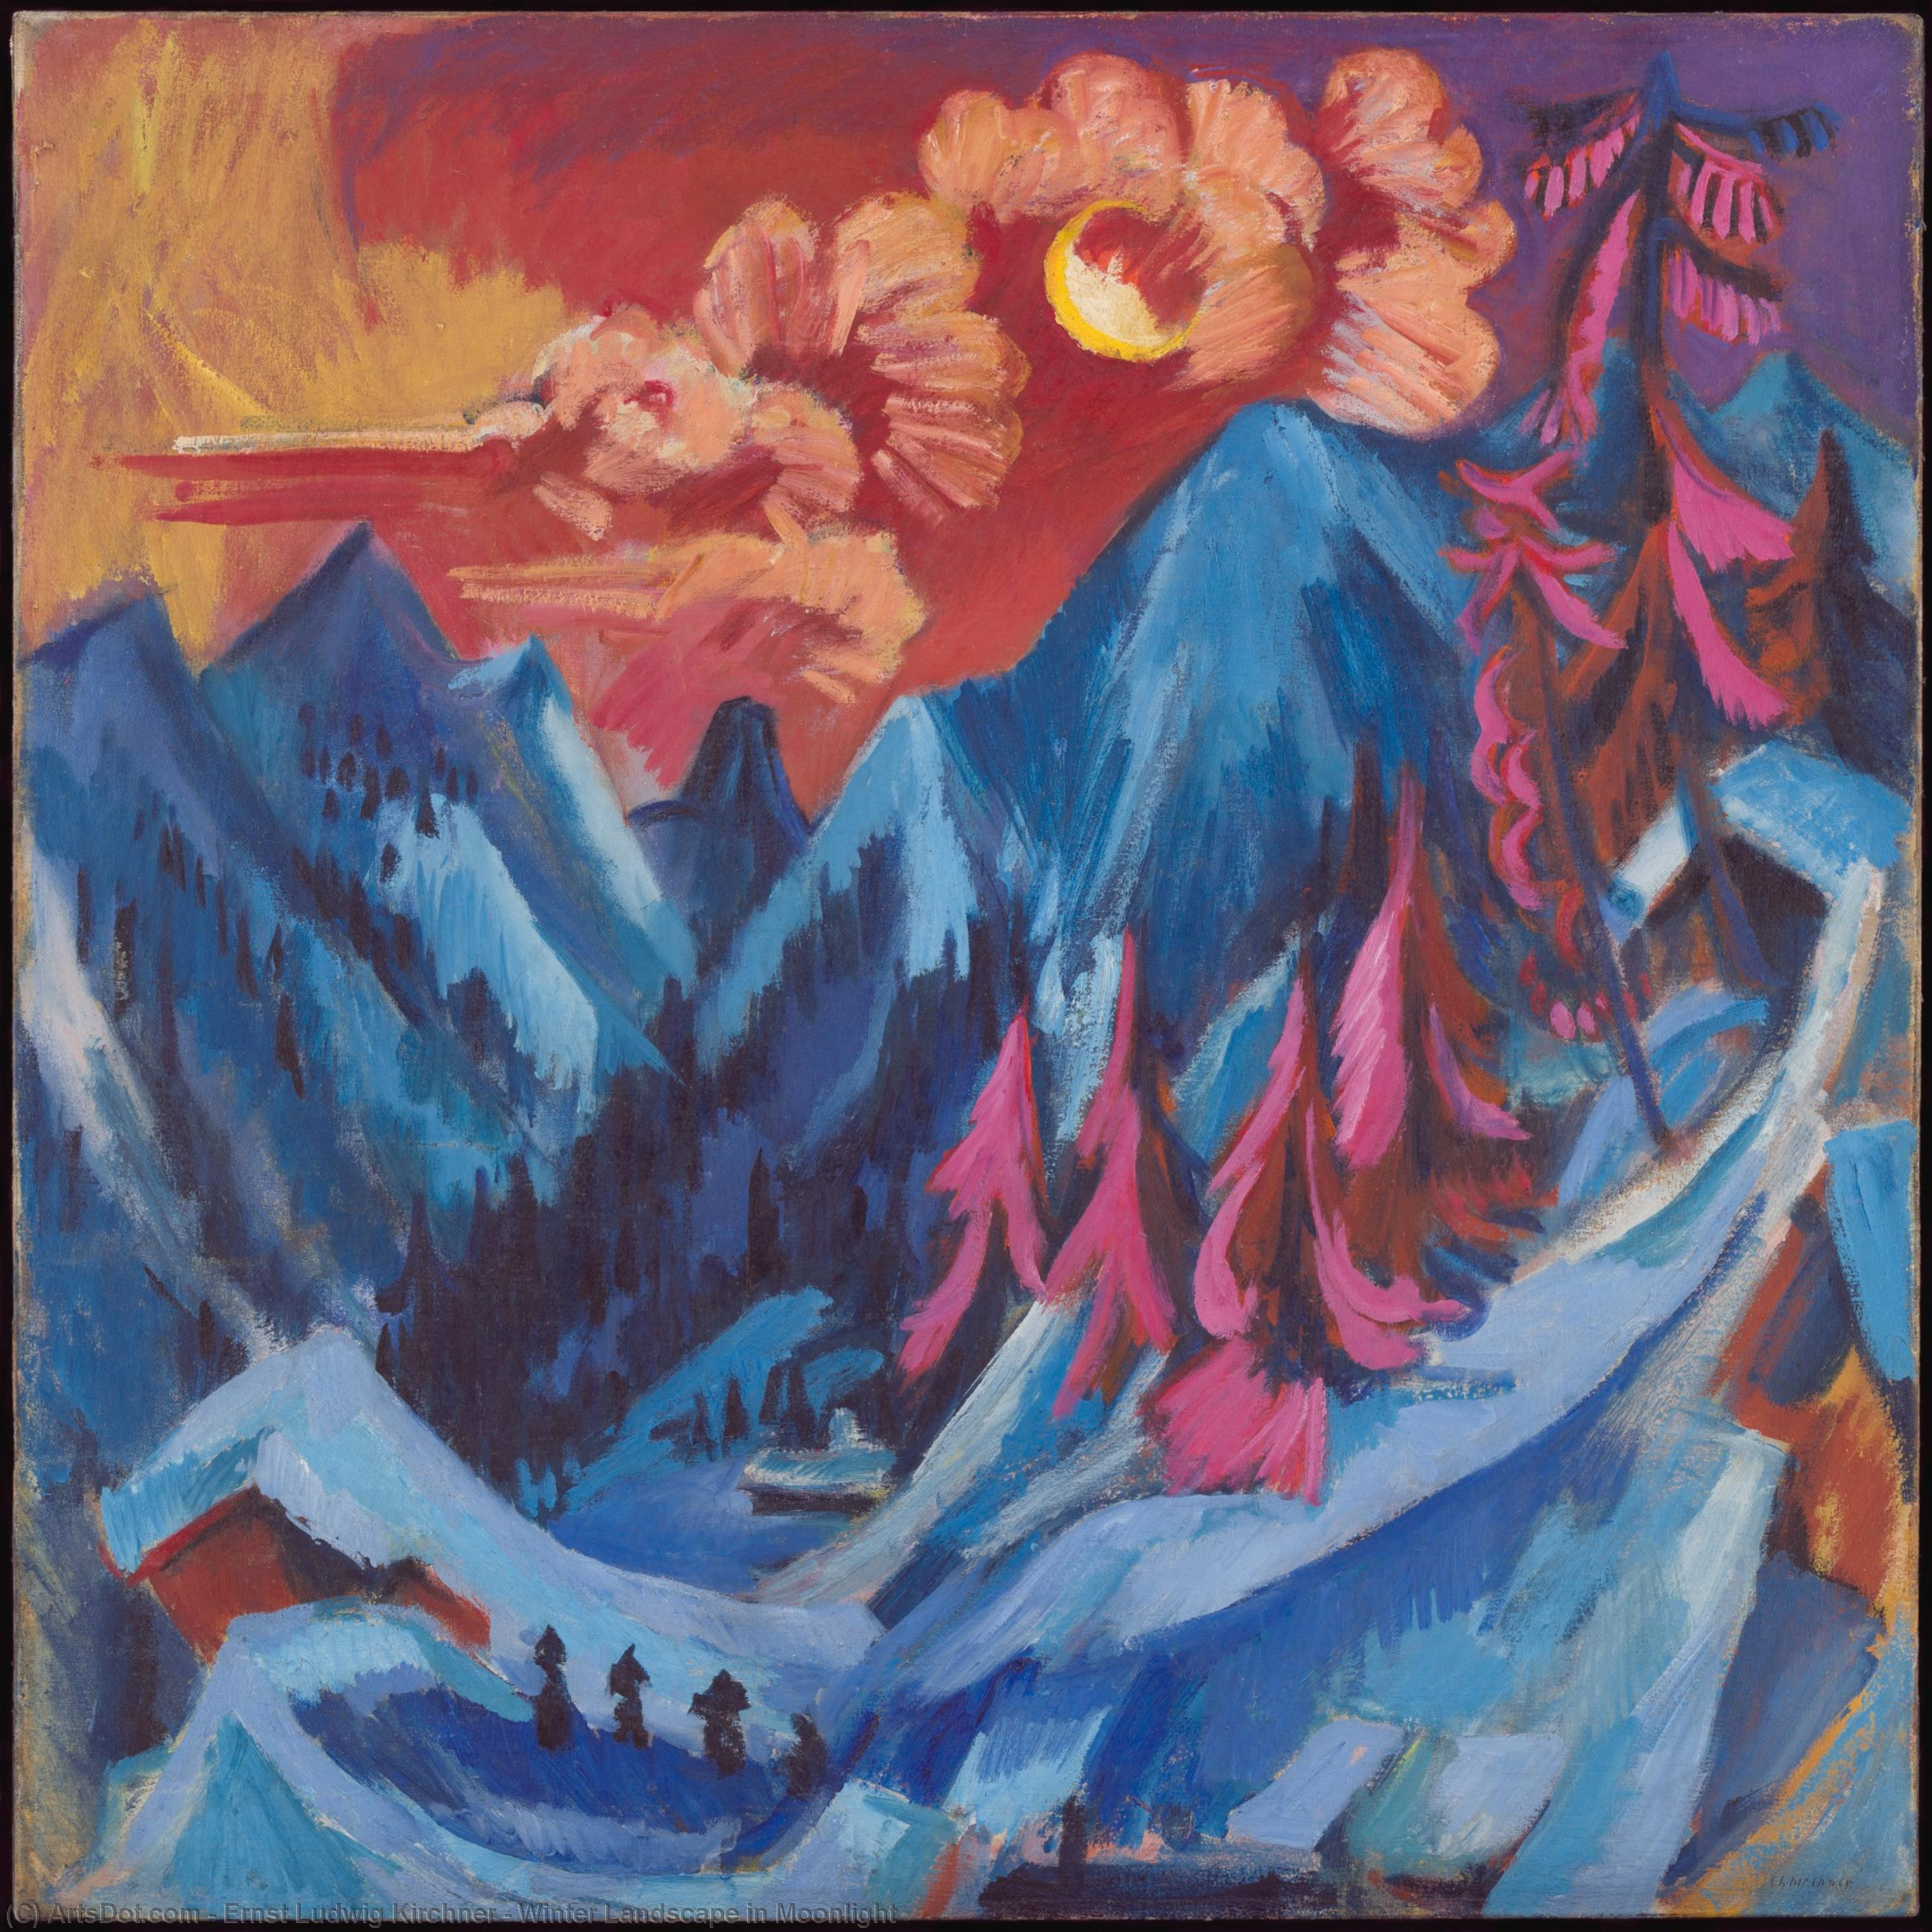 Wikioo.org - The Encyclopedia of Fine Arts - Painting, Artwork by Ernst Ludwig Kirchner - Winter Landscape in Moonlight